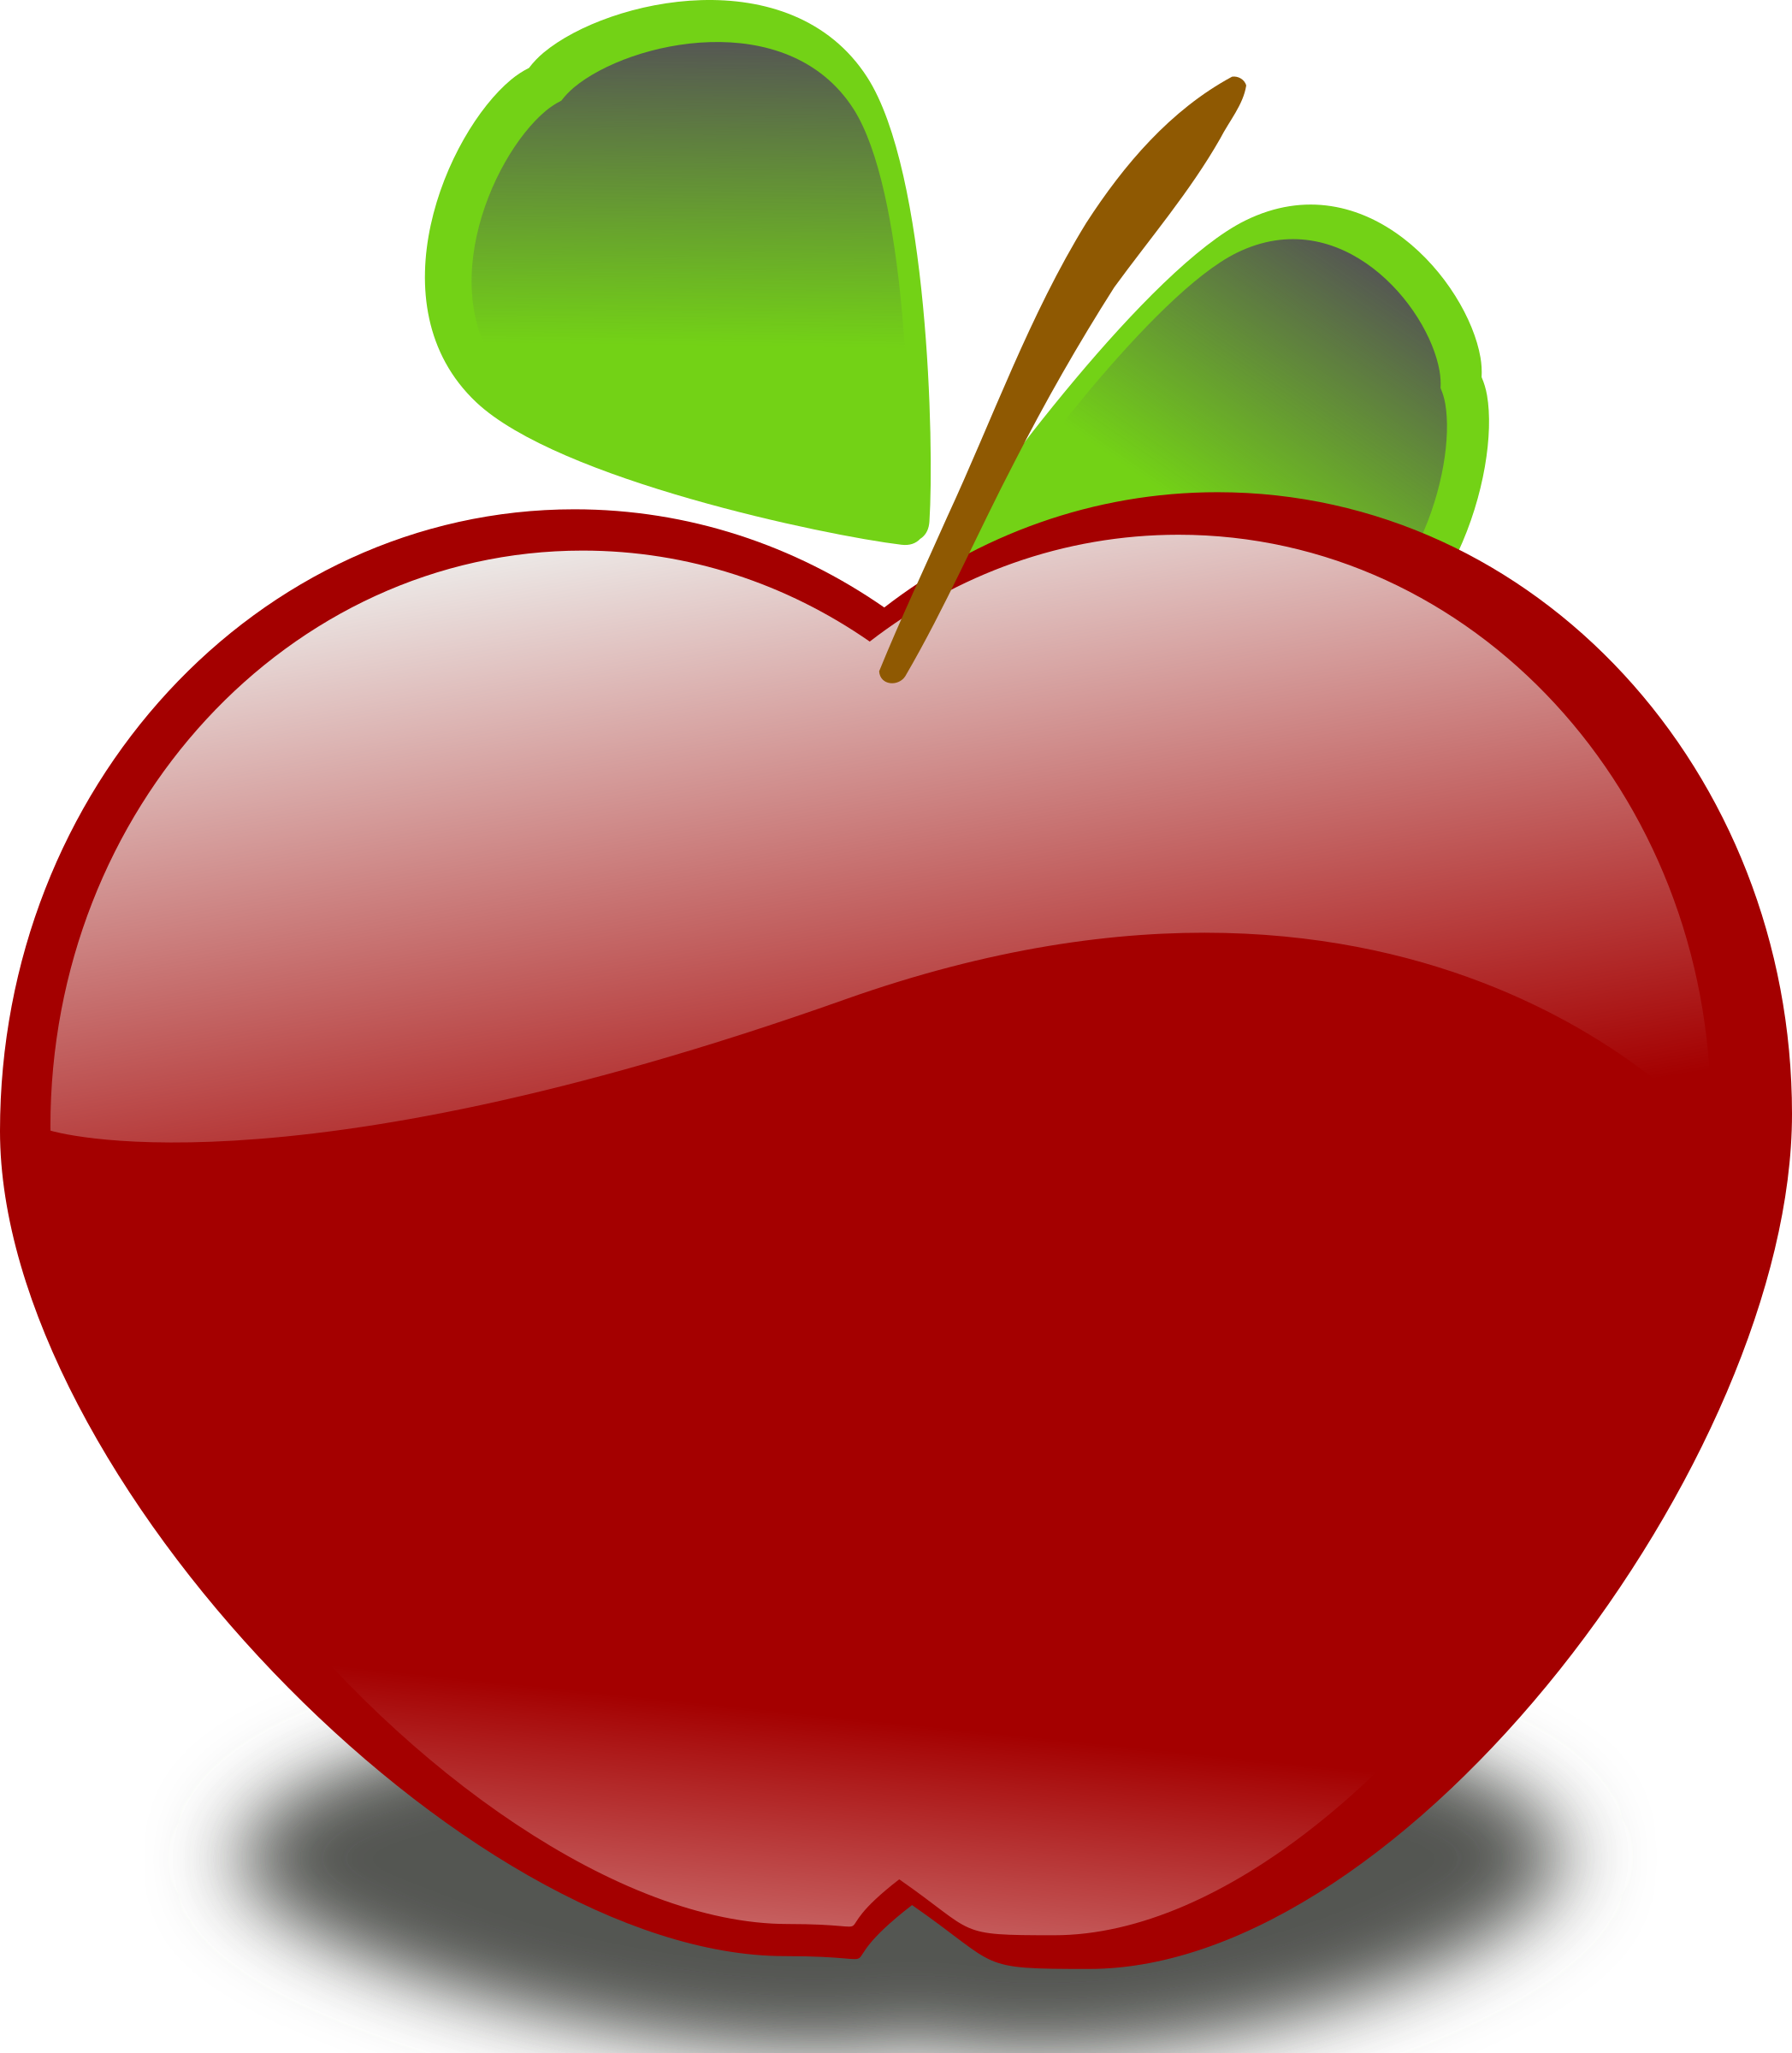 clipart stock Clipart of apples. Apple big image png